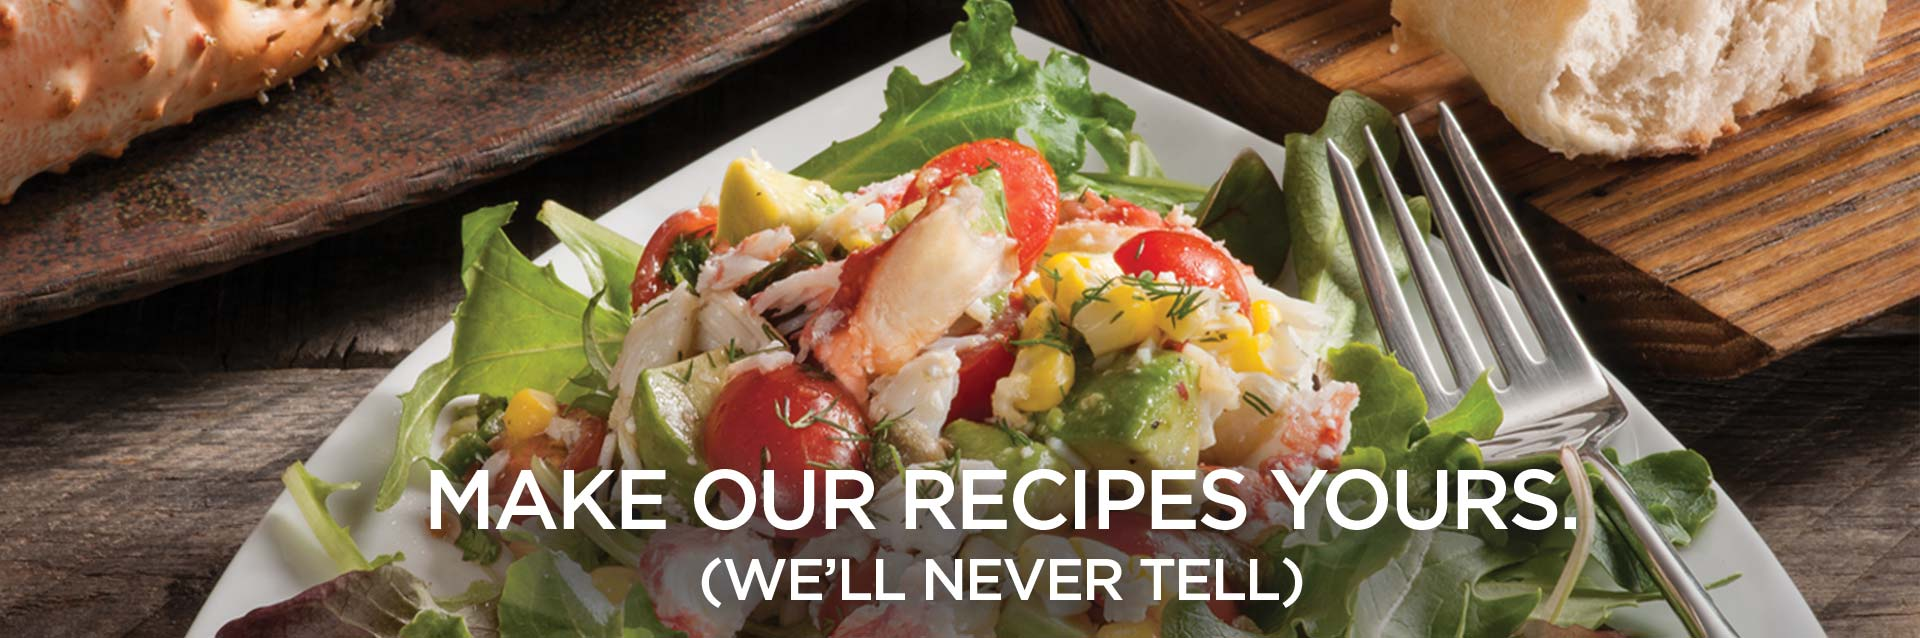 Make your recipes ours. (We'll never tell)